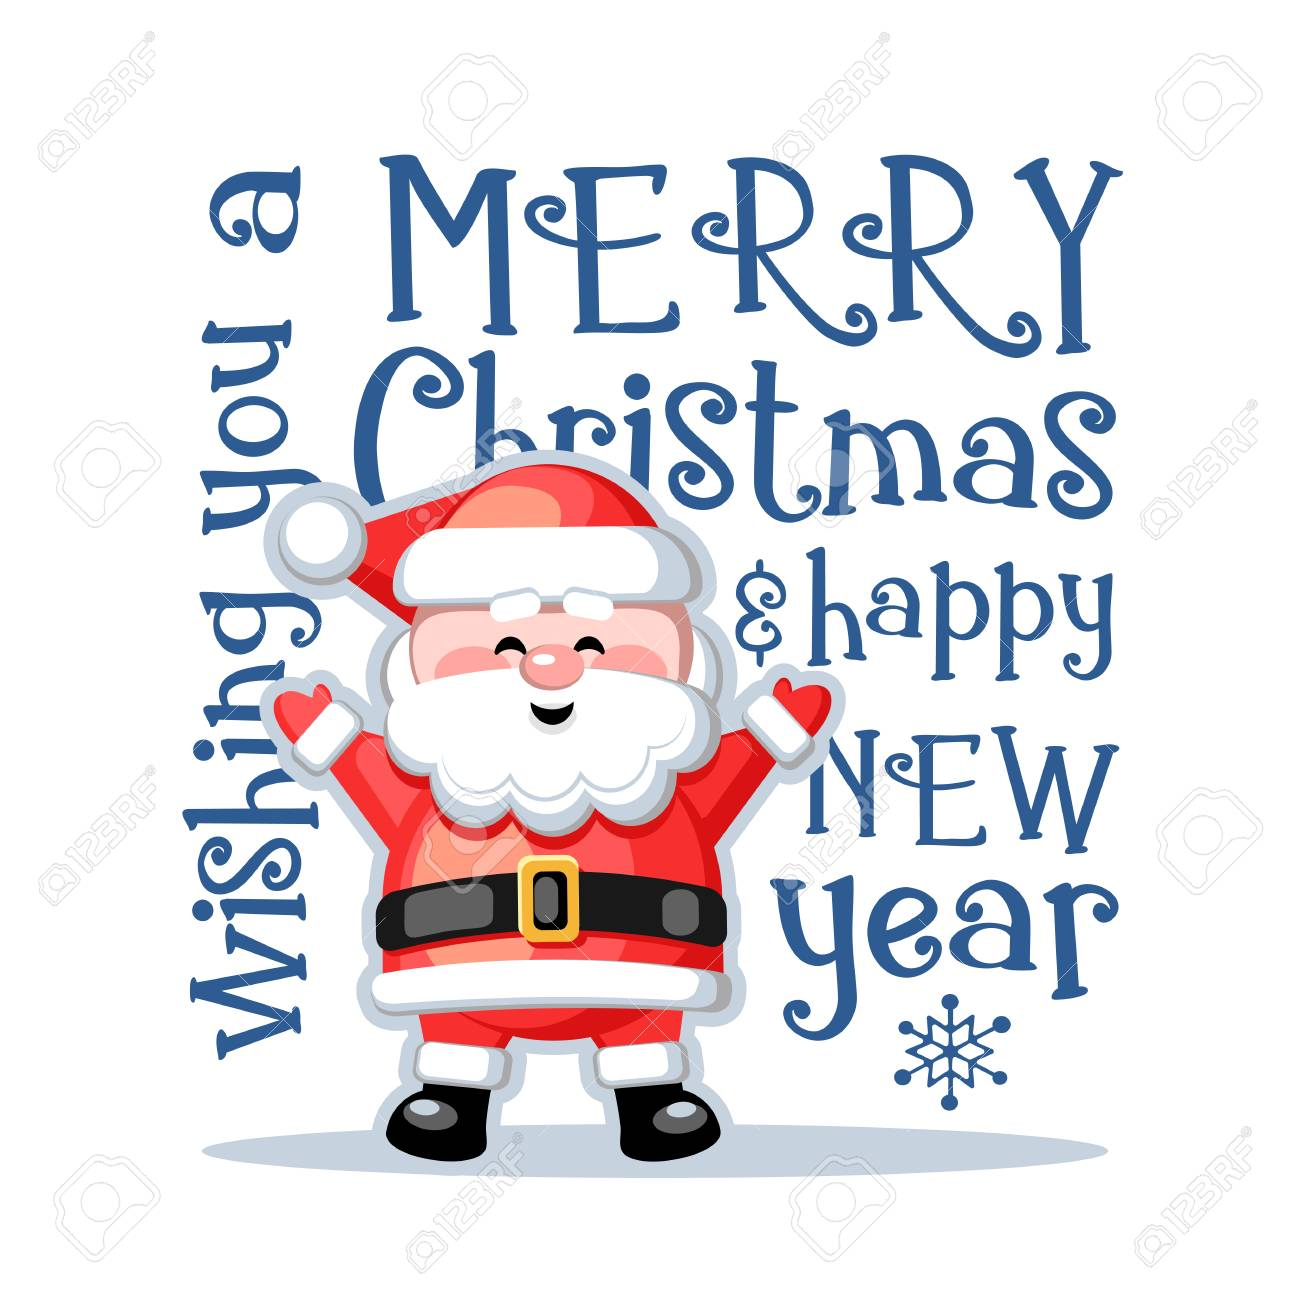 Funny Merry Christmas.Merry Christmas And Happy New Year Greeting Card With Funny